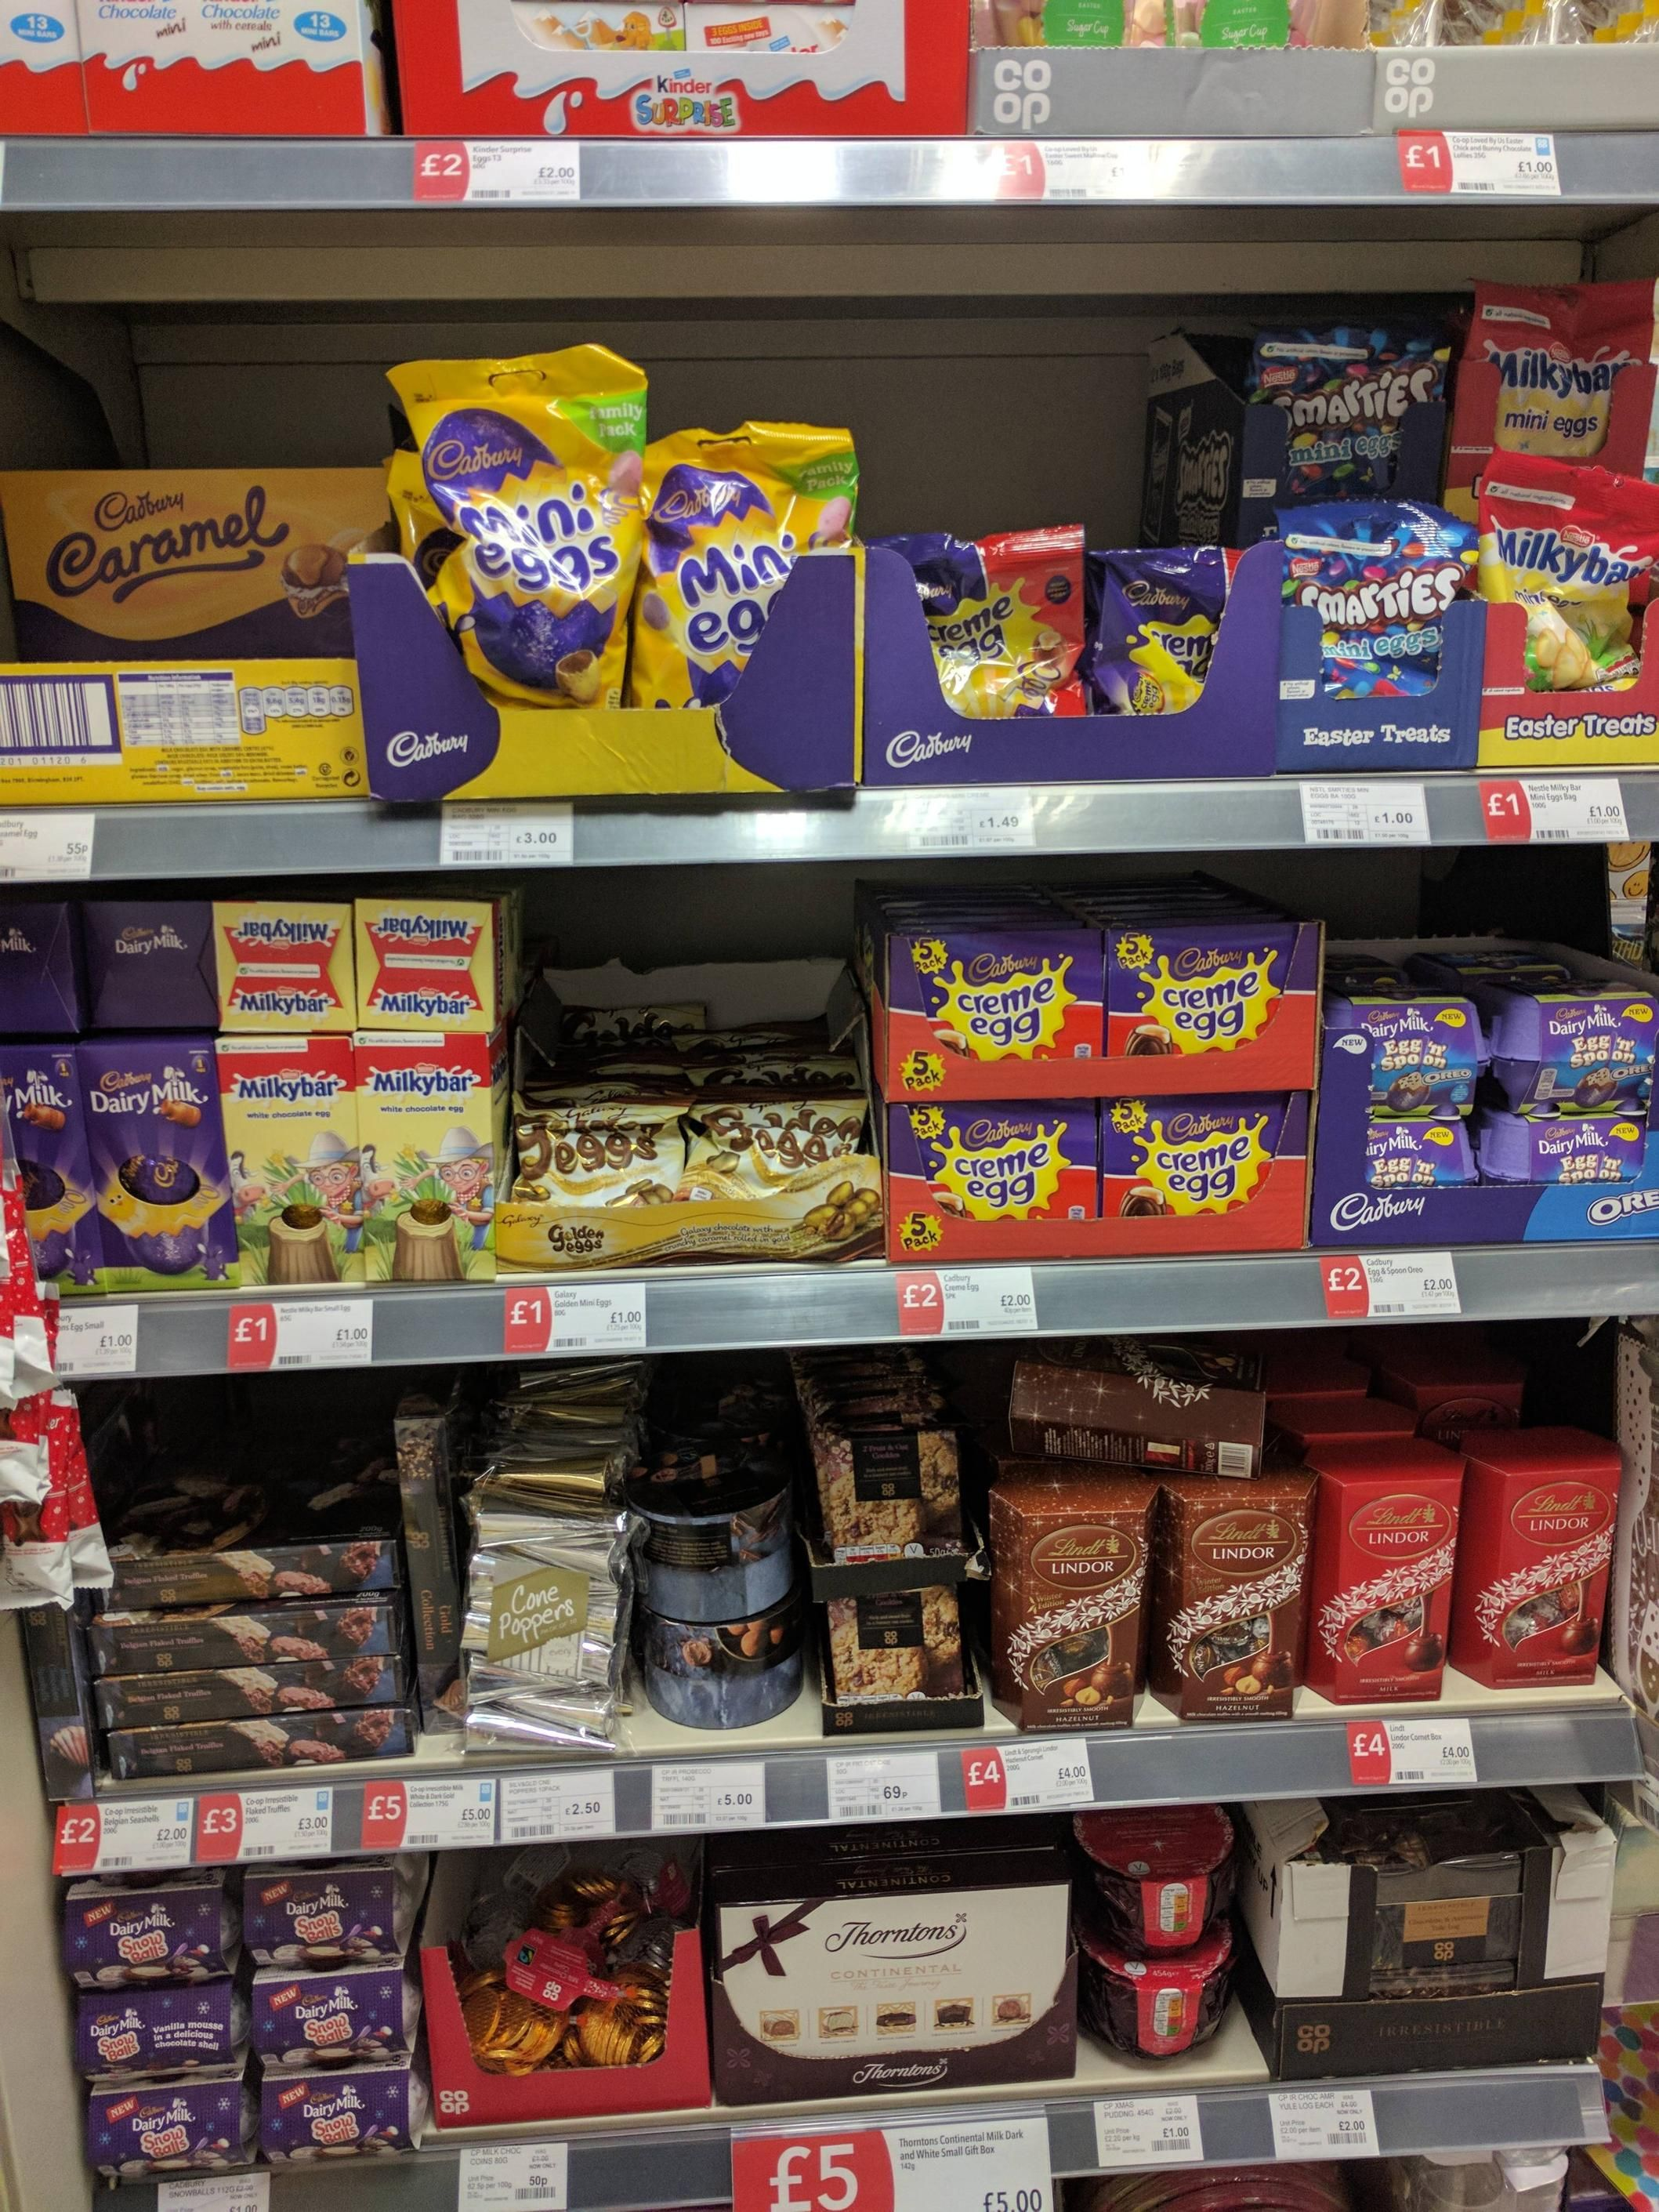 Co op celebrating boxing day...